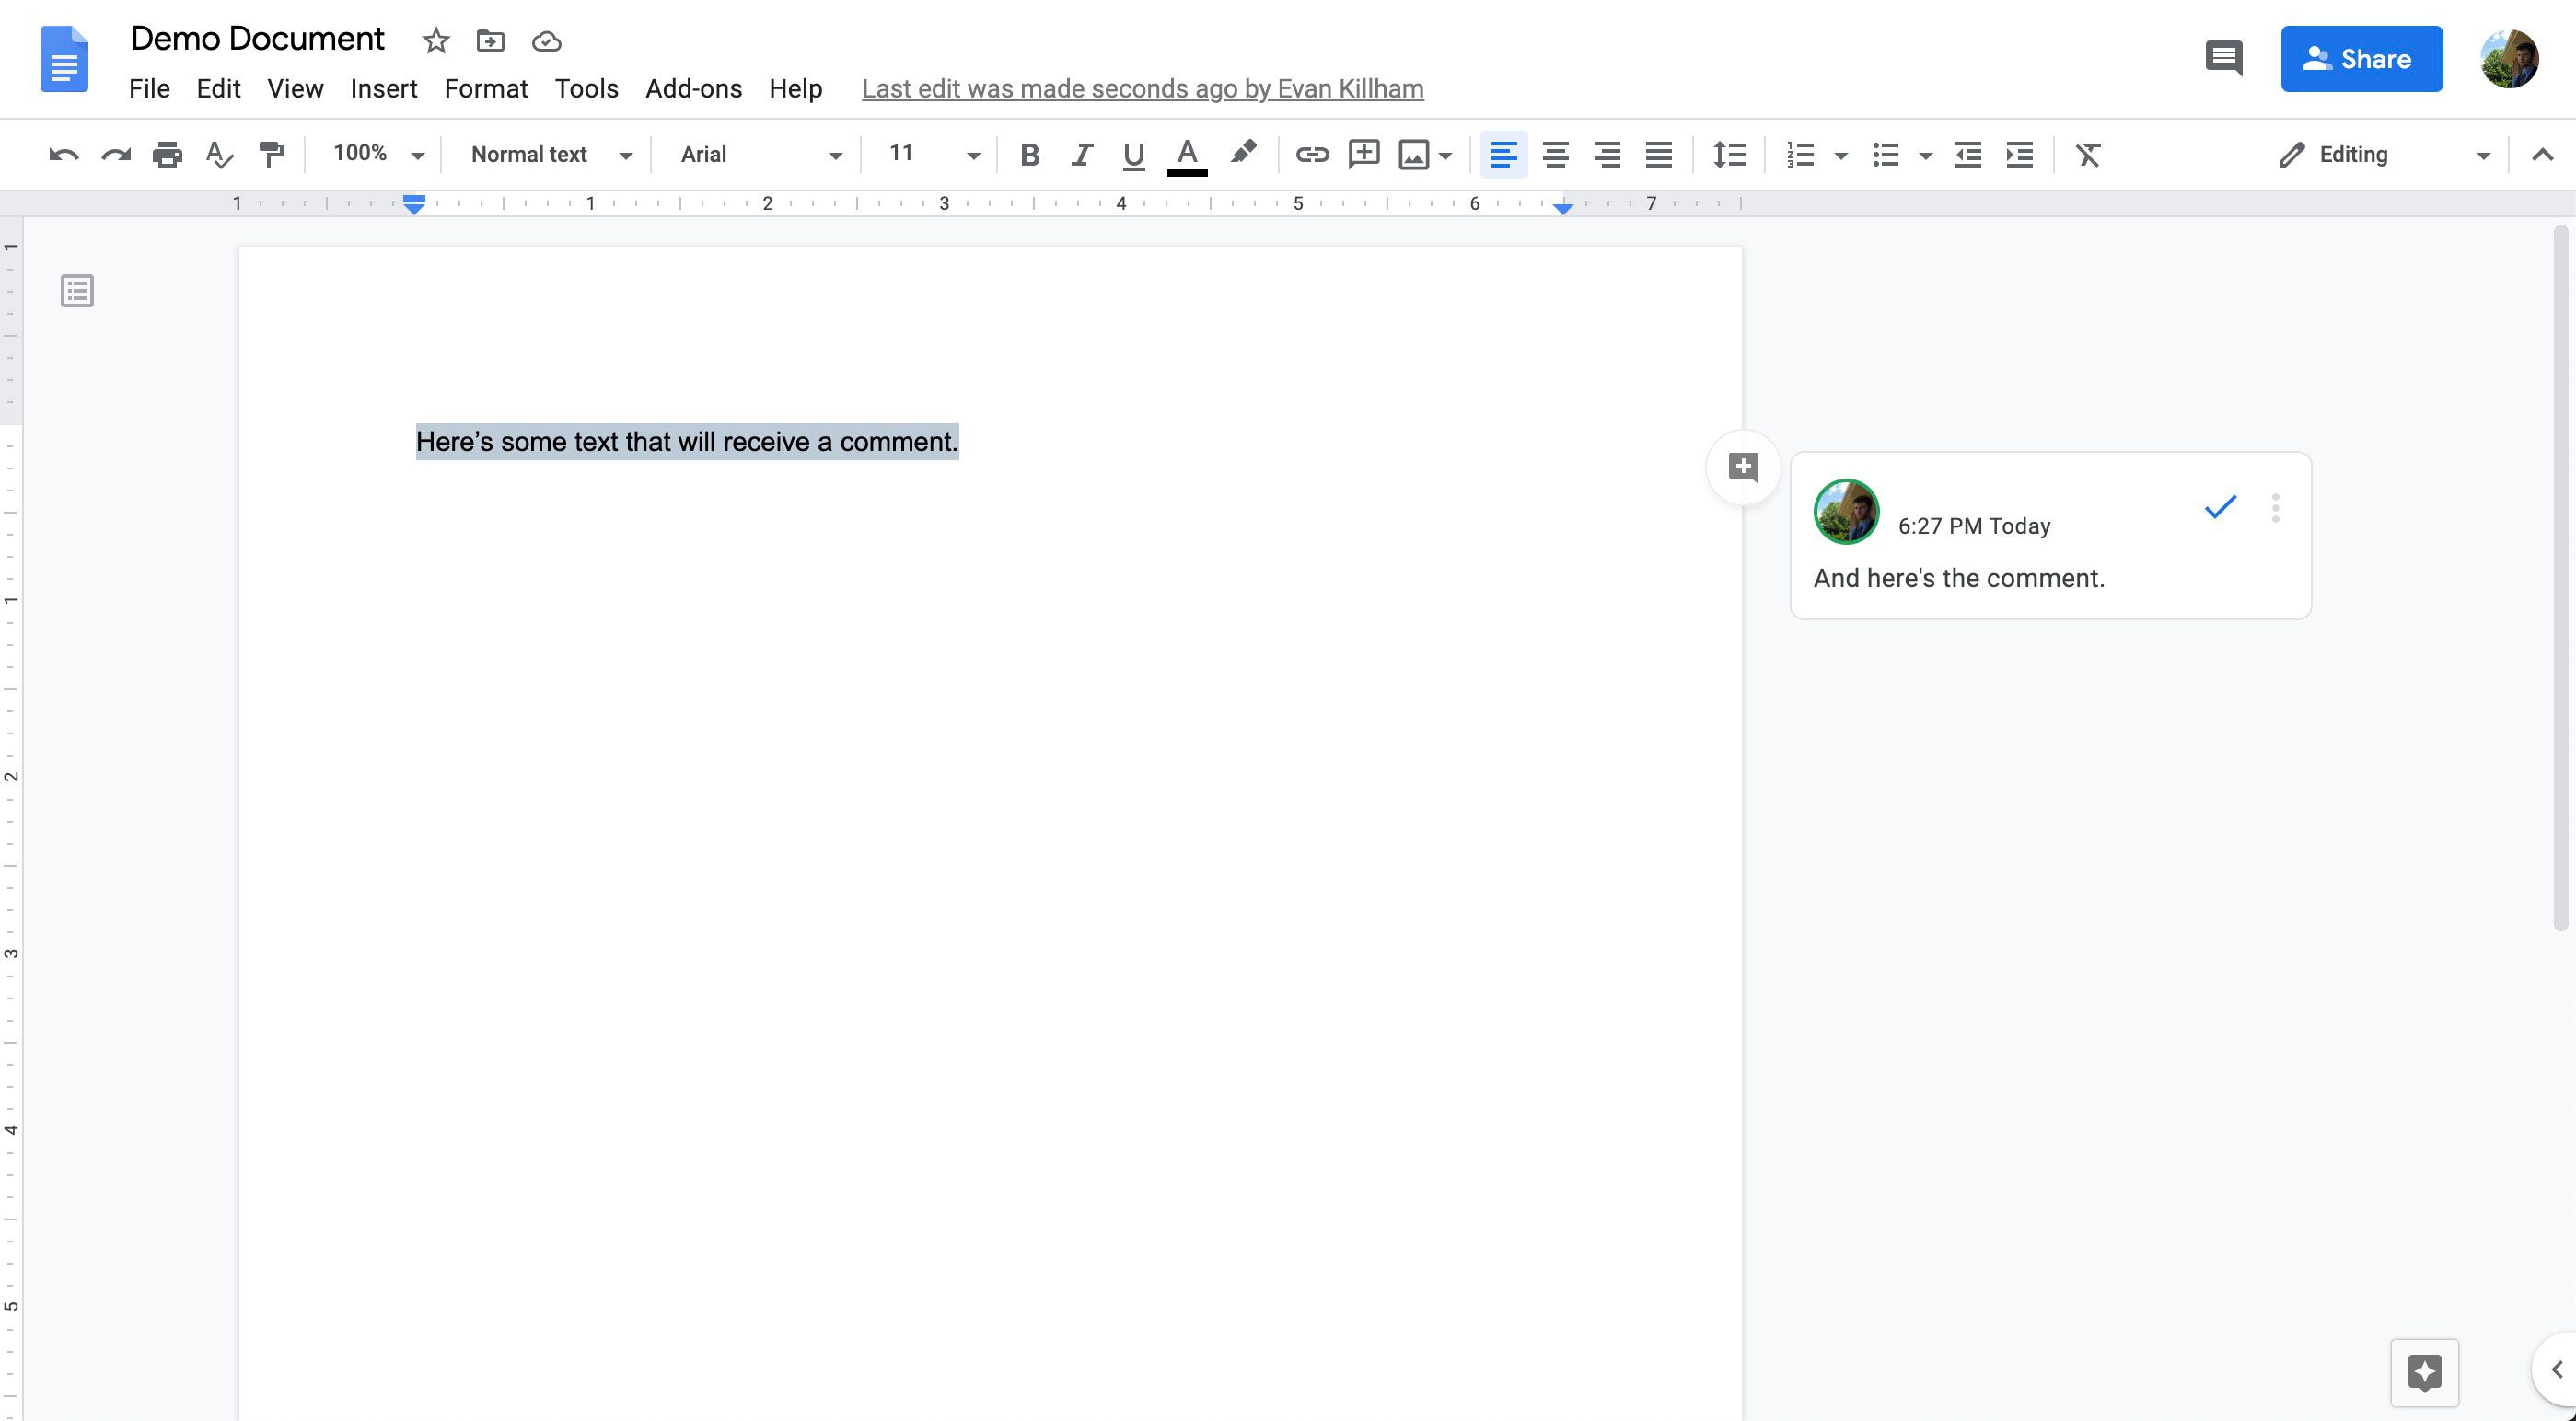 A comment in Google Docs